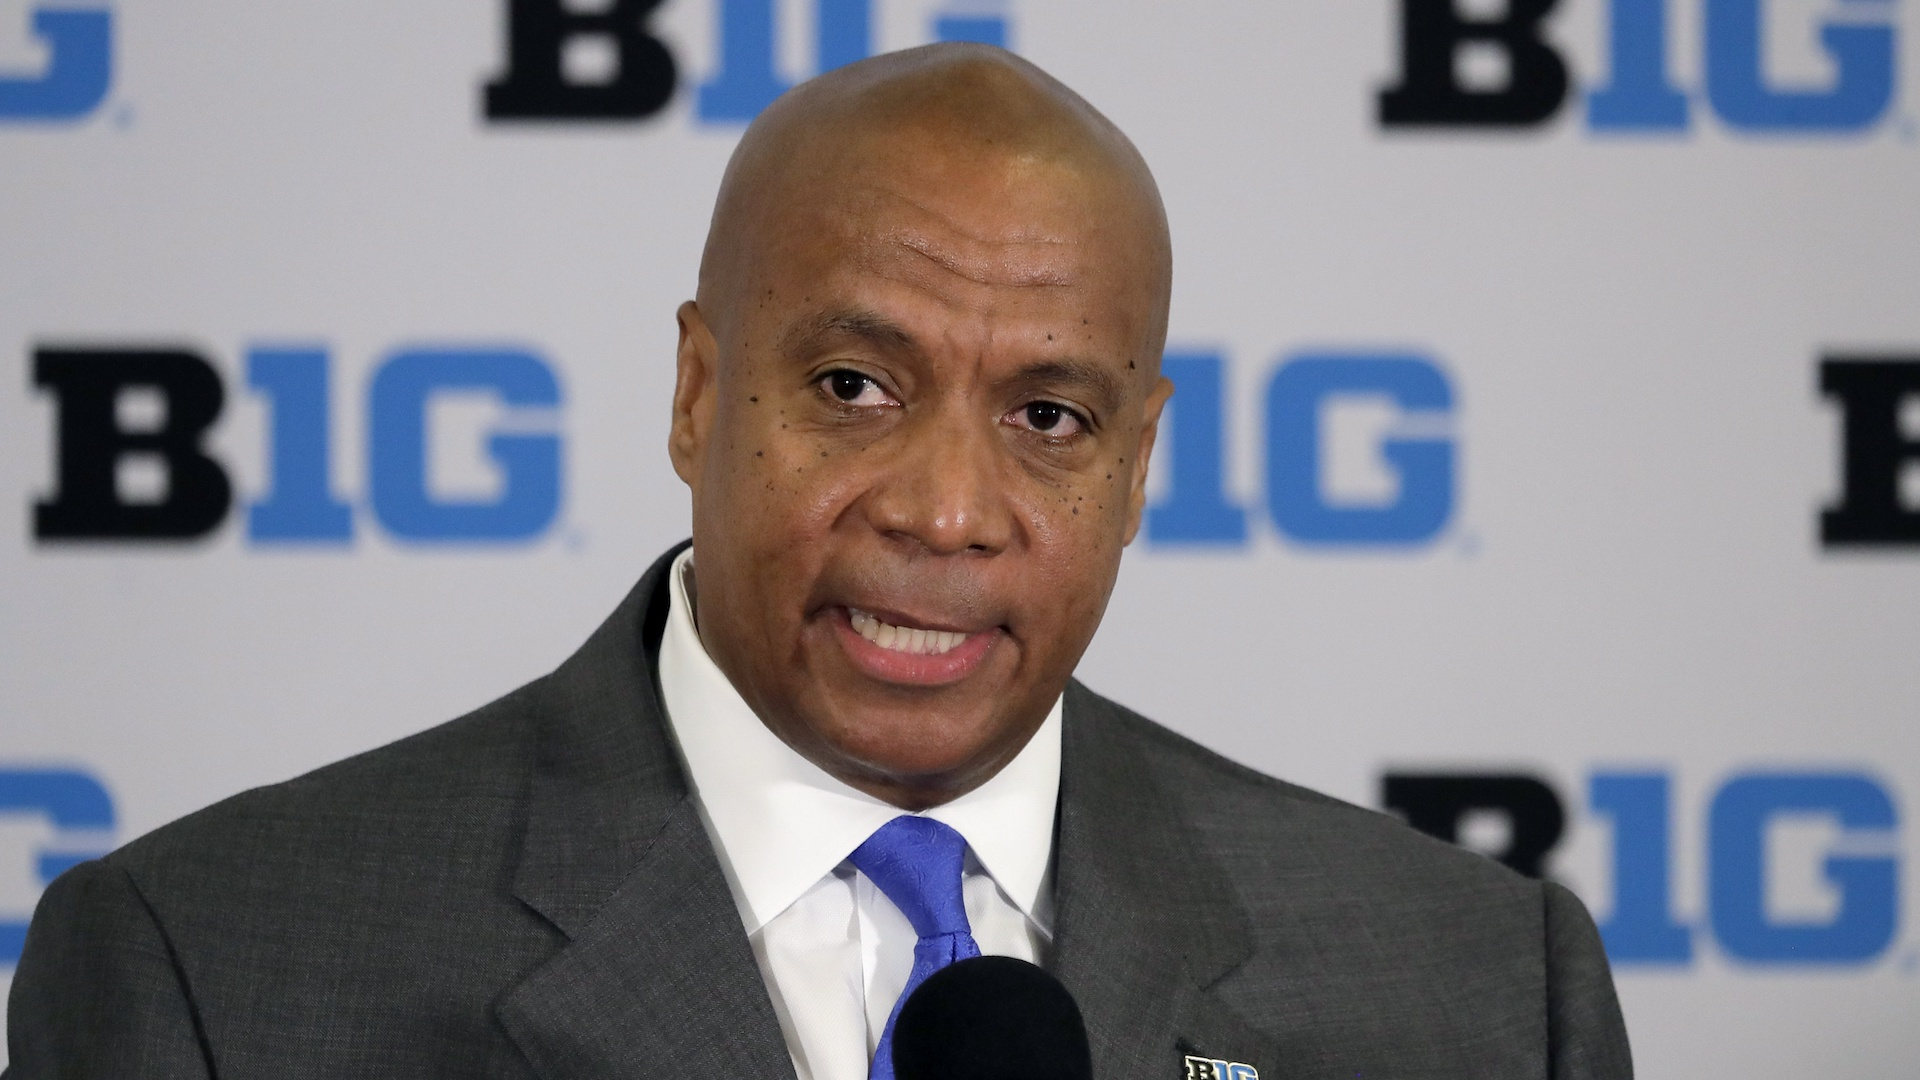 In this June 4, 2019, file photo, Kevin Warren talks to reporters after being named Big Ten Conference Commissioner during a news conference in Rosemont, Ill. (AP Photo/Charles Rex Arbogast, File)